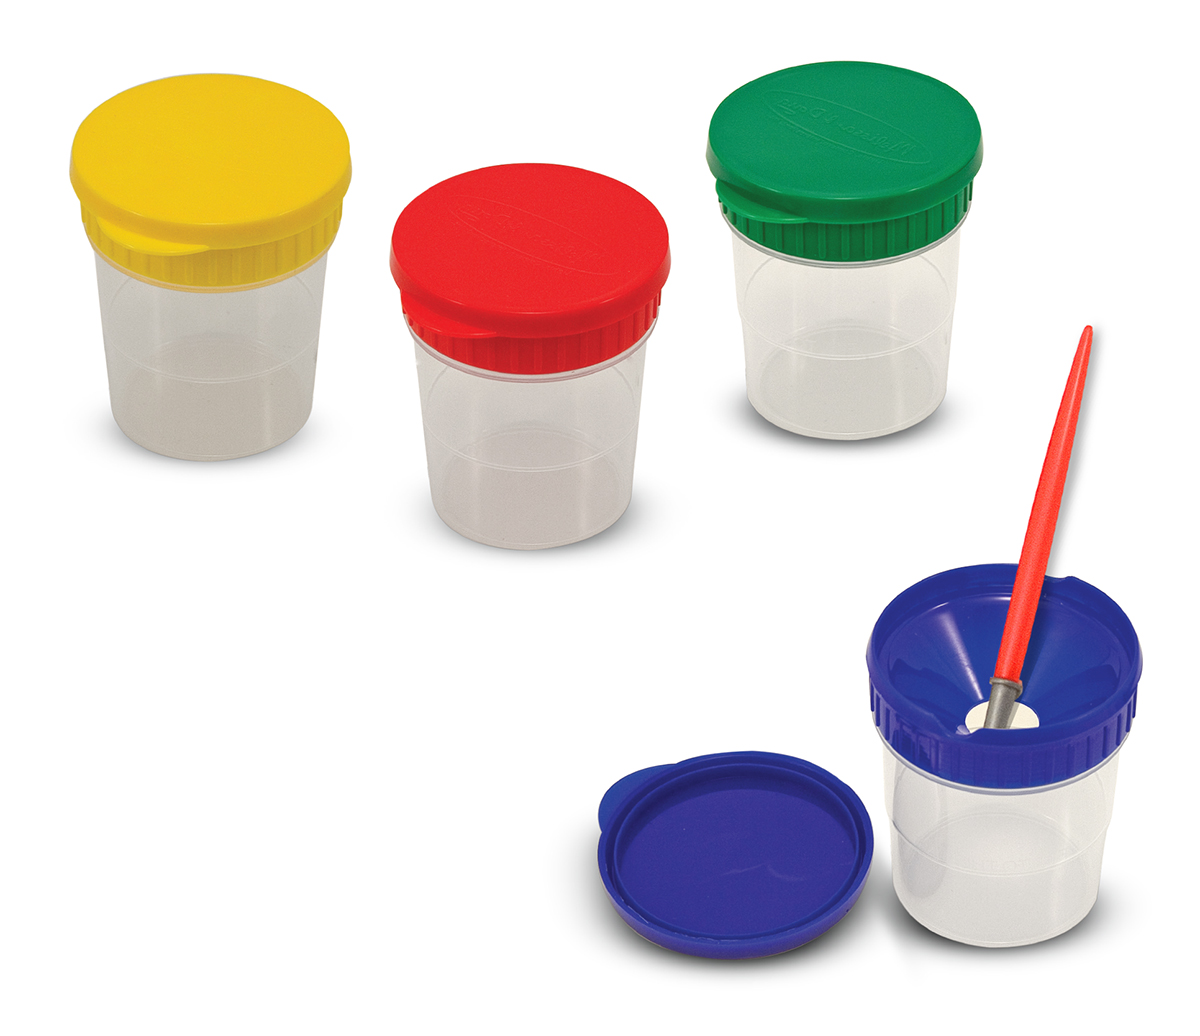 Melissa & Doug - Spill-proof Paint Cups 5353a262a9de05145cbf2903339a4053